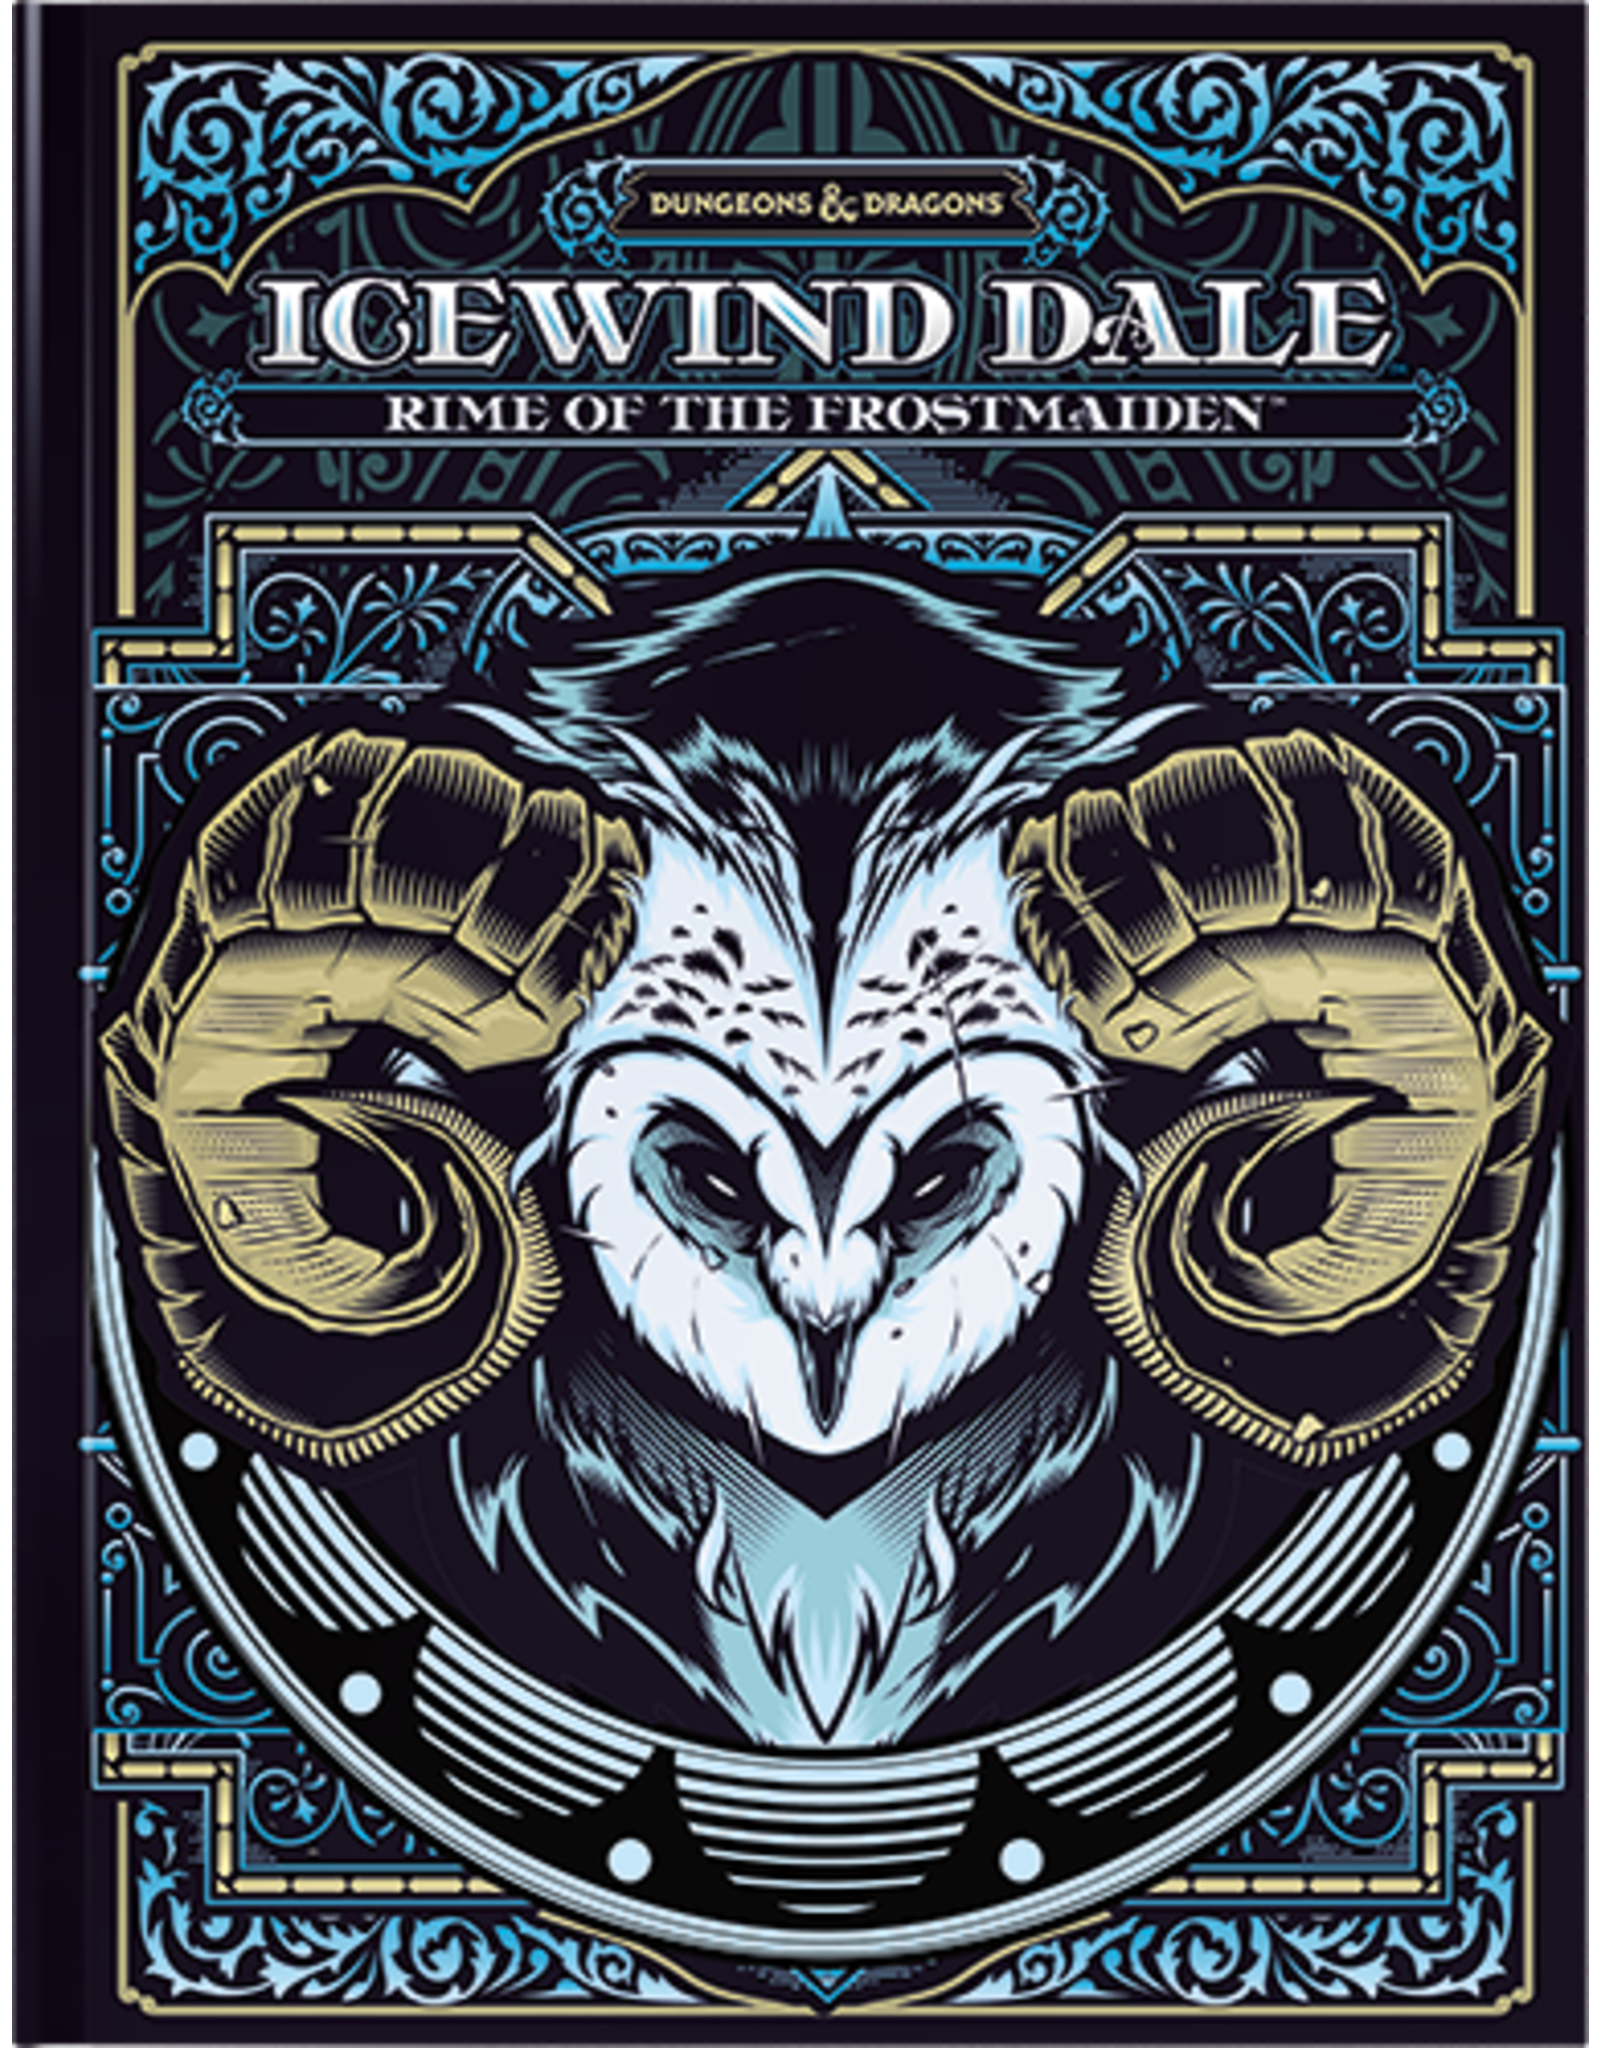 Wizards of the Coast Preorder Dungeons & Dragons Icewind Dale Alt-Cover